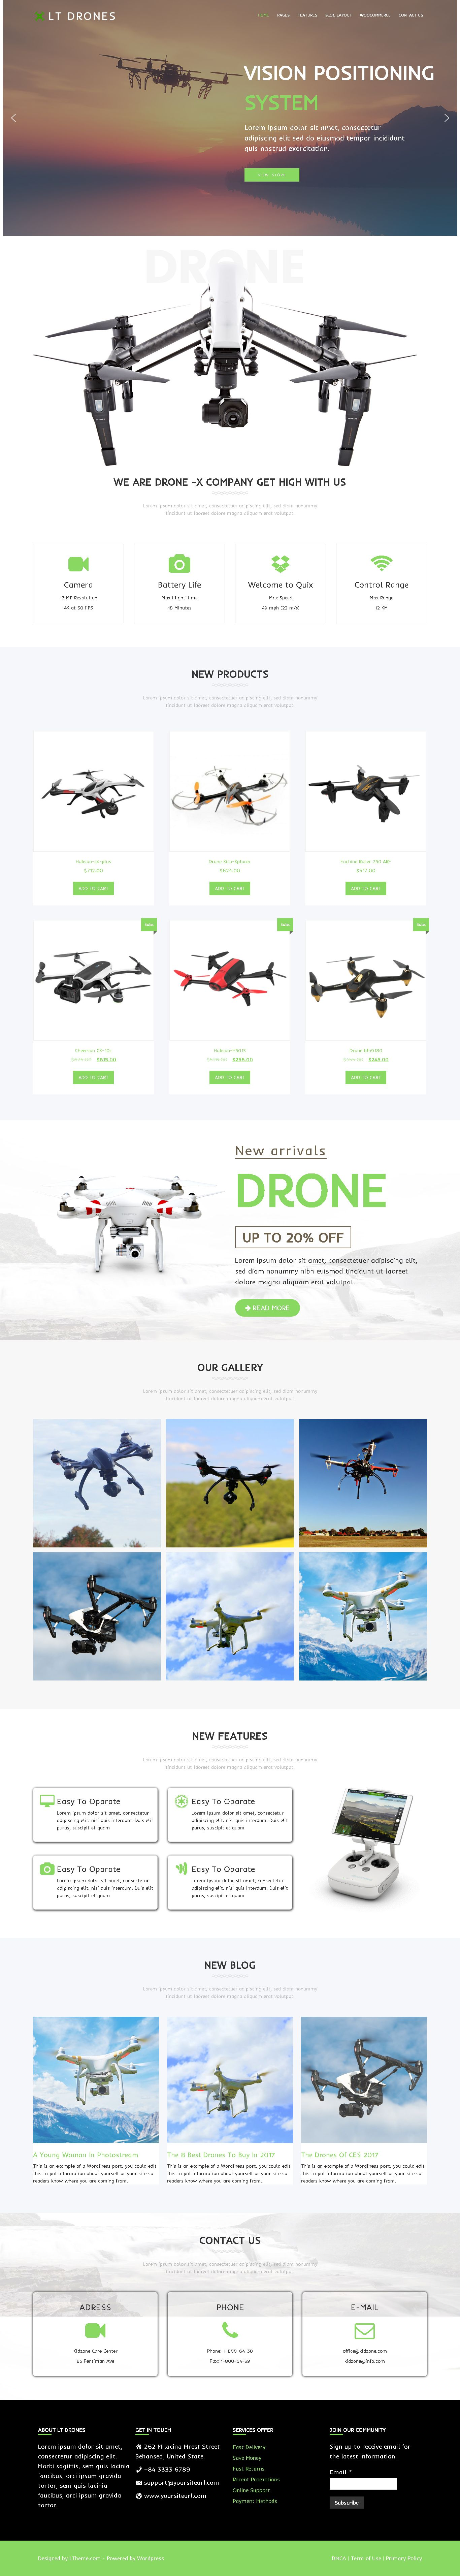 LT Drones - Drone WordPress Theme Screenshot 1